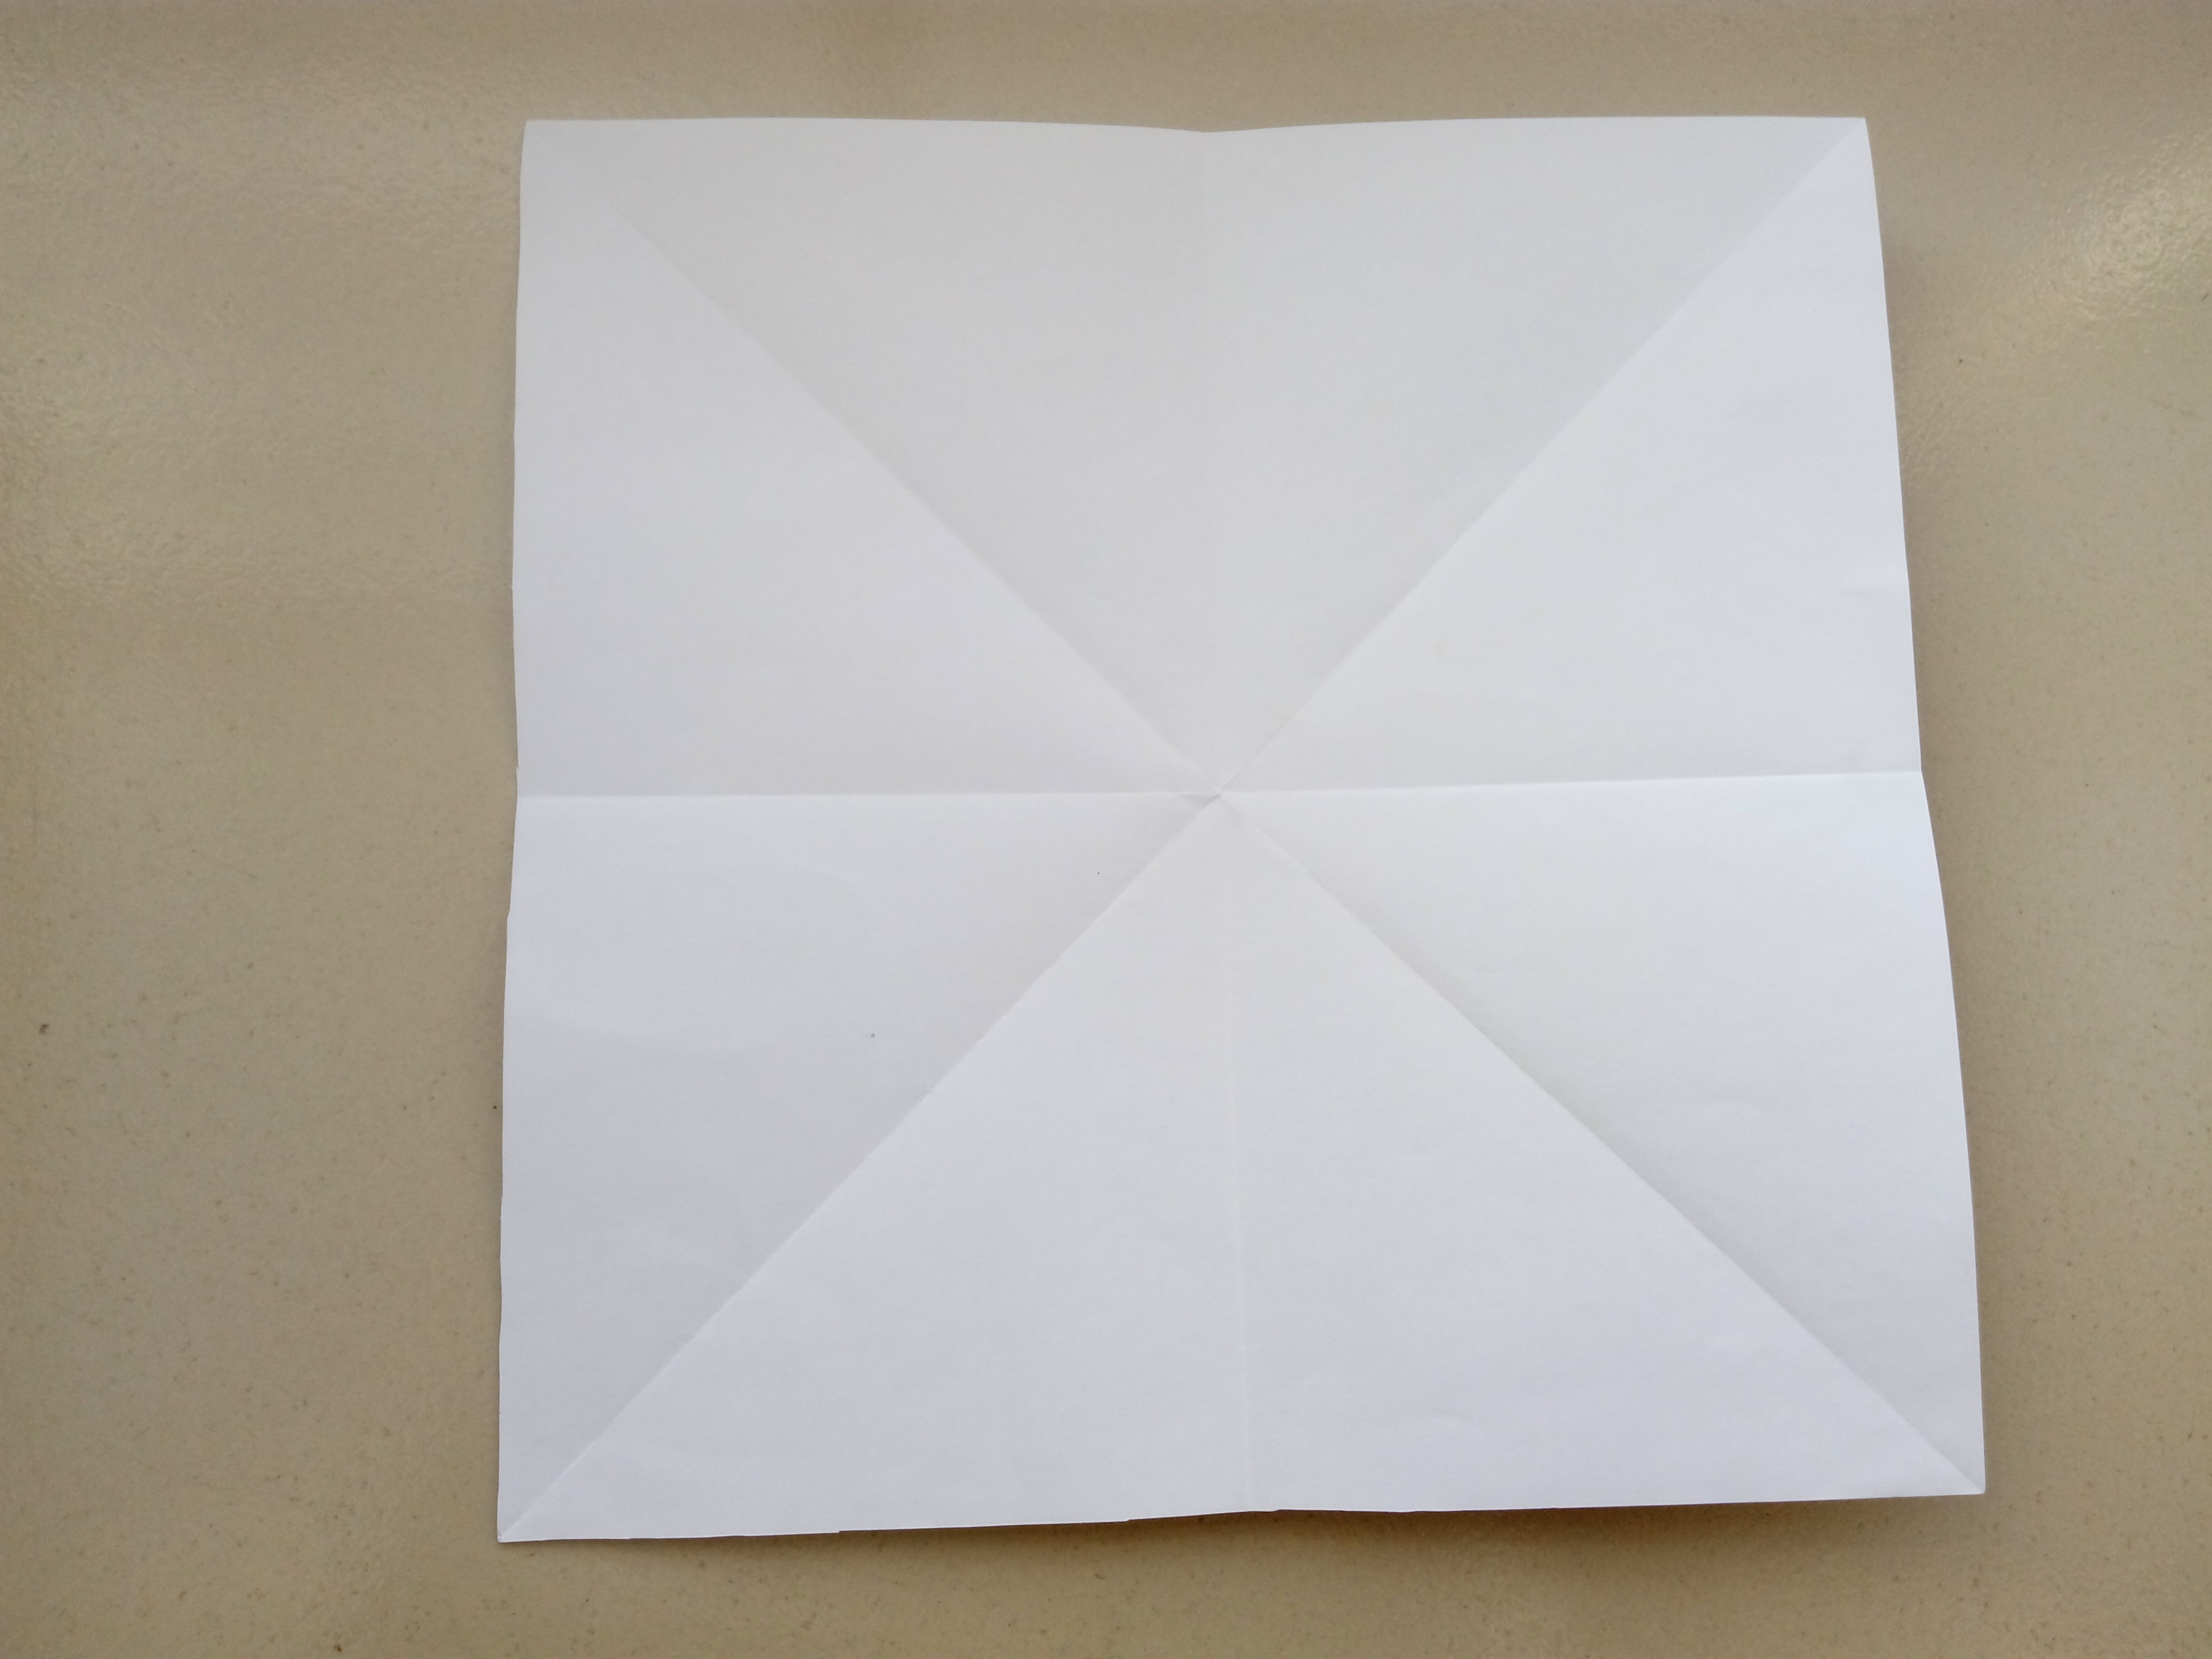 Picture of Fold the Paper in Half Vertically and Horizontally